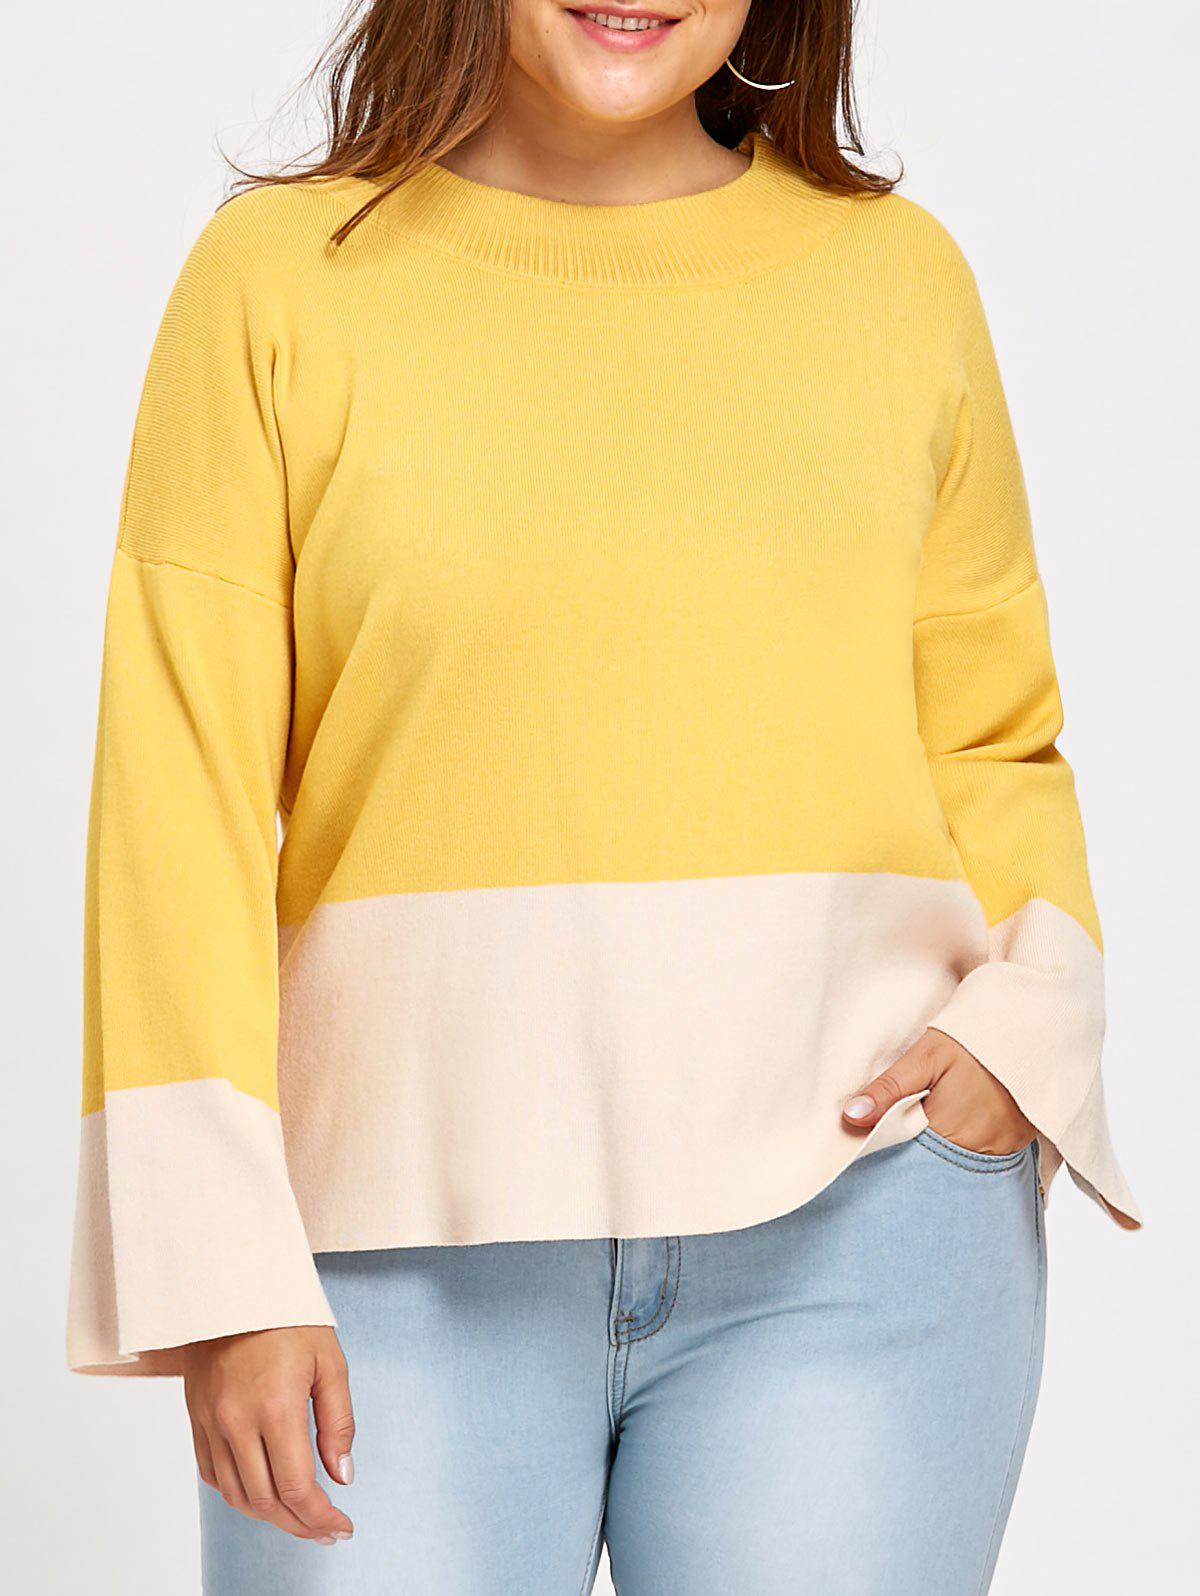 2017 Color Block Mock Neck Plus Size Sweater YELLOW XL In Plus ...